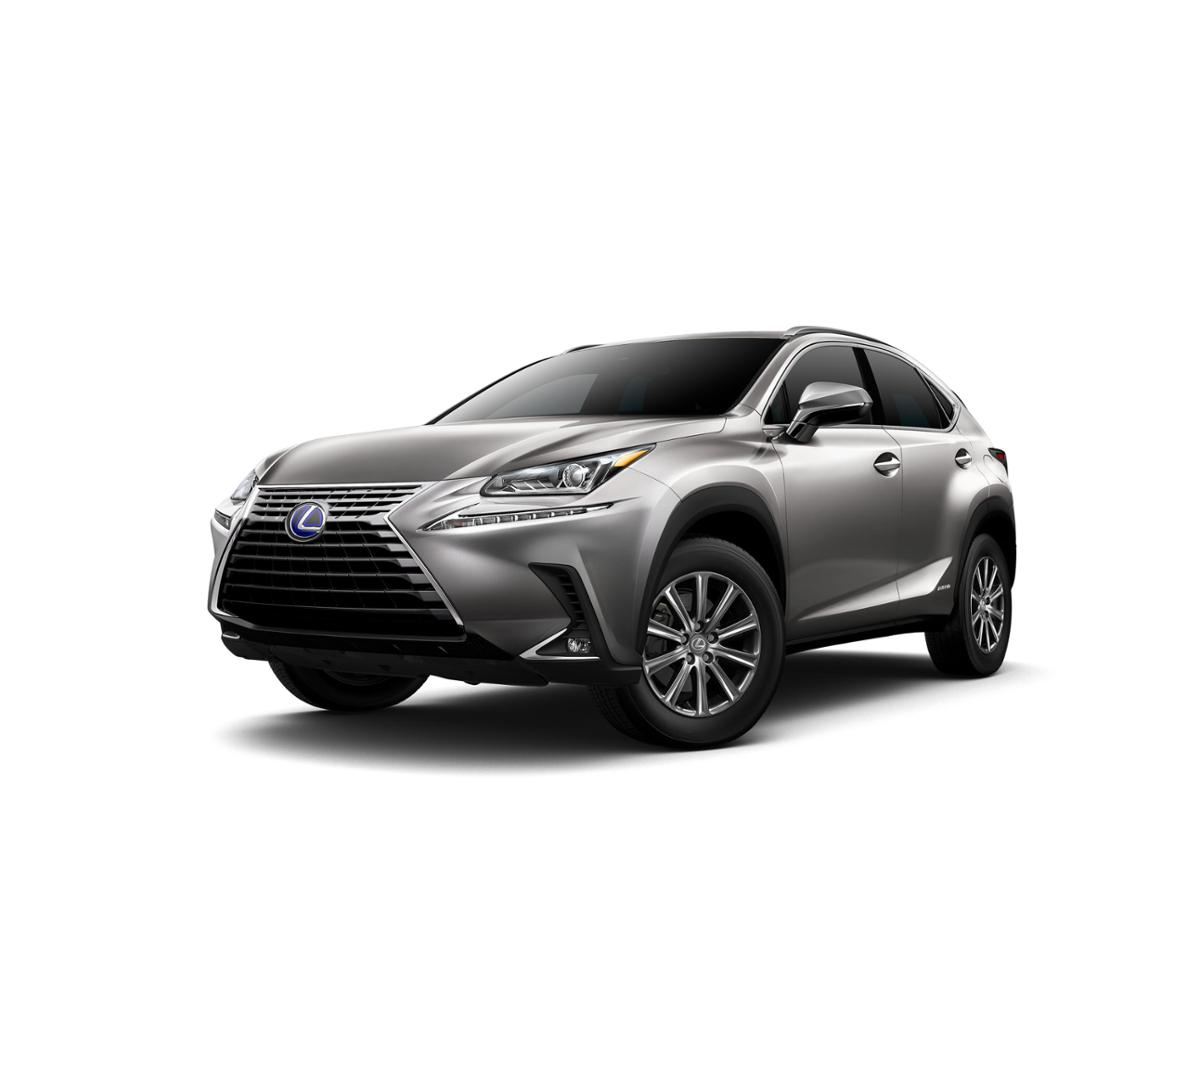 2019 Lexus NX 300h Vehicle Photo in Mission Viejo, CA 92692